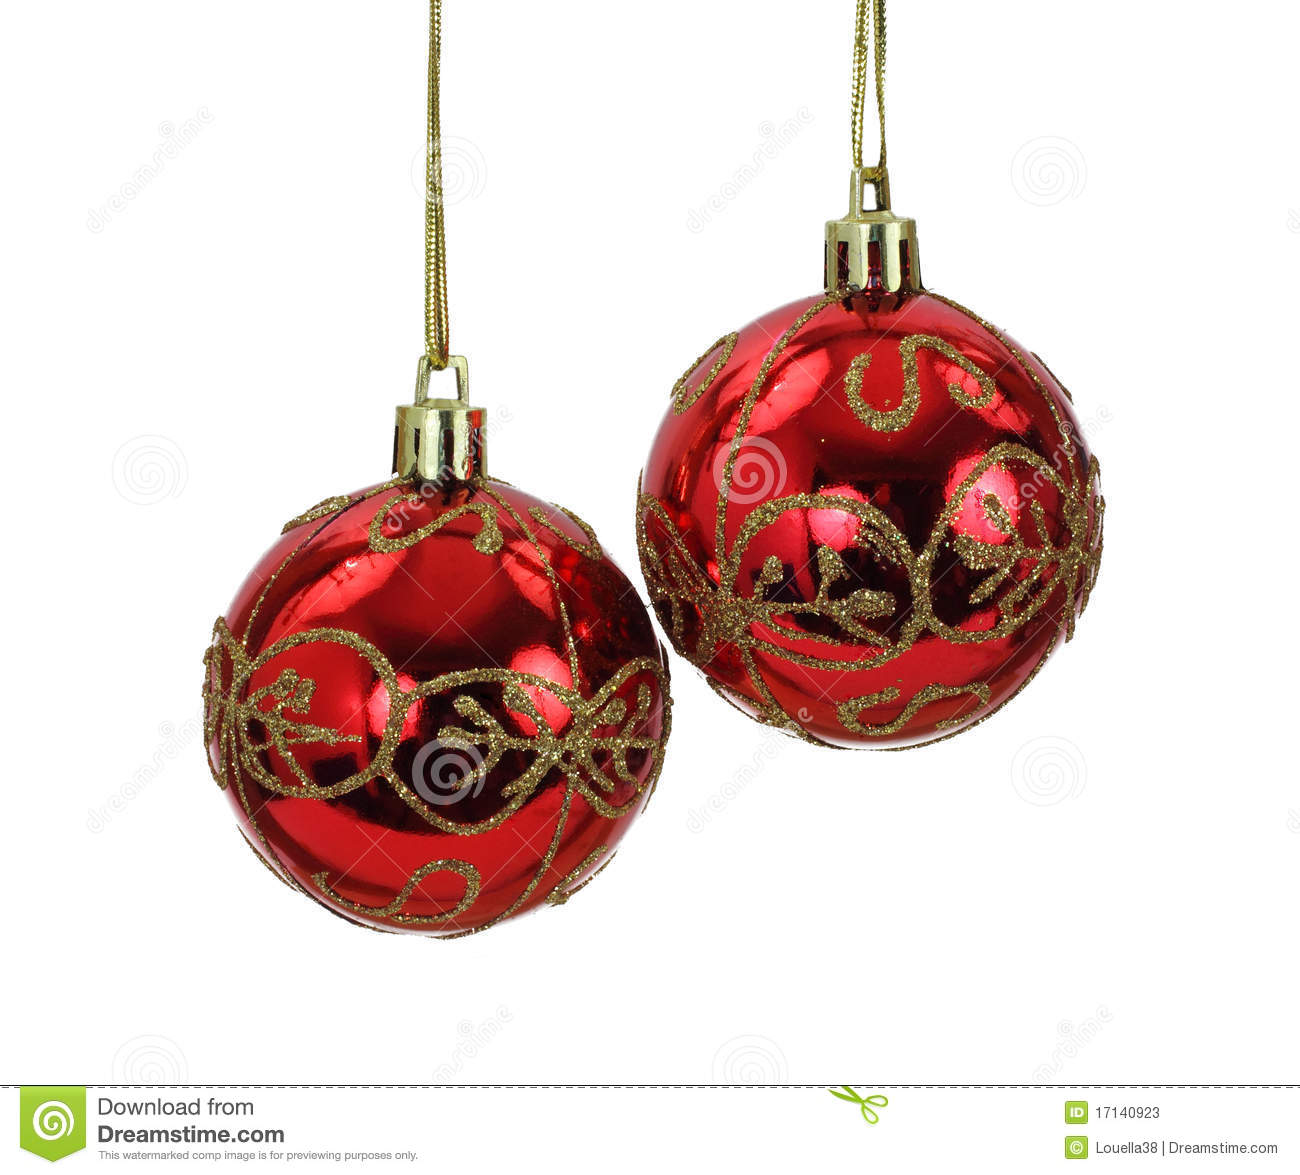 Christmas Tree Balls.Hanging Red And Gold Christmas Tree Balls Stock Image